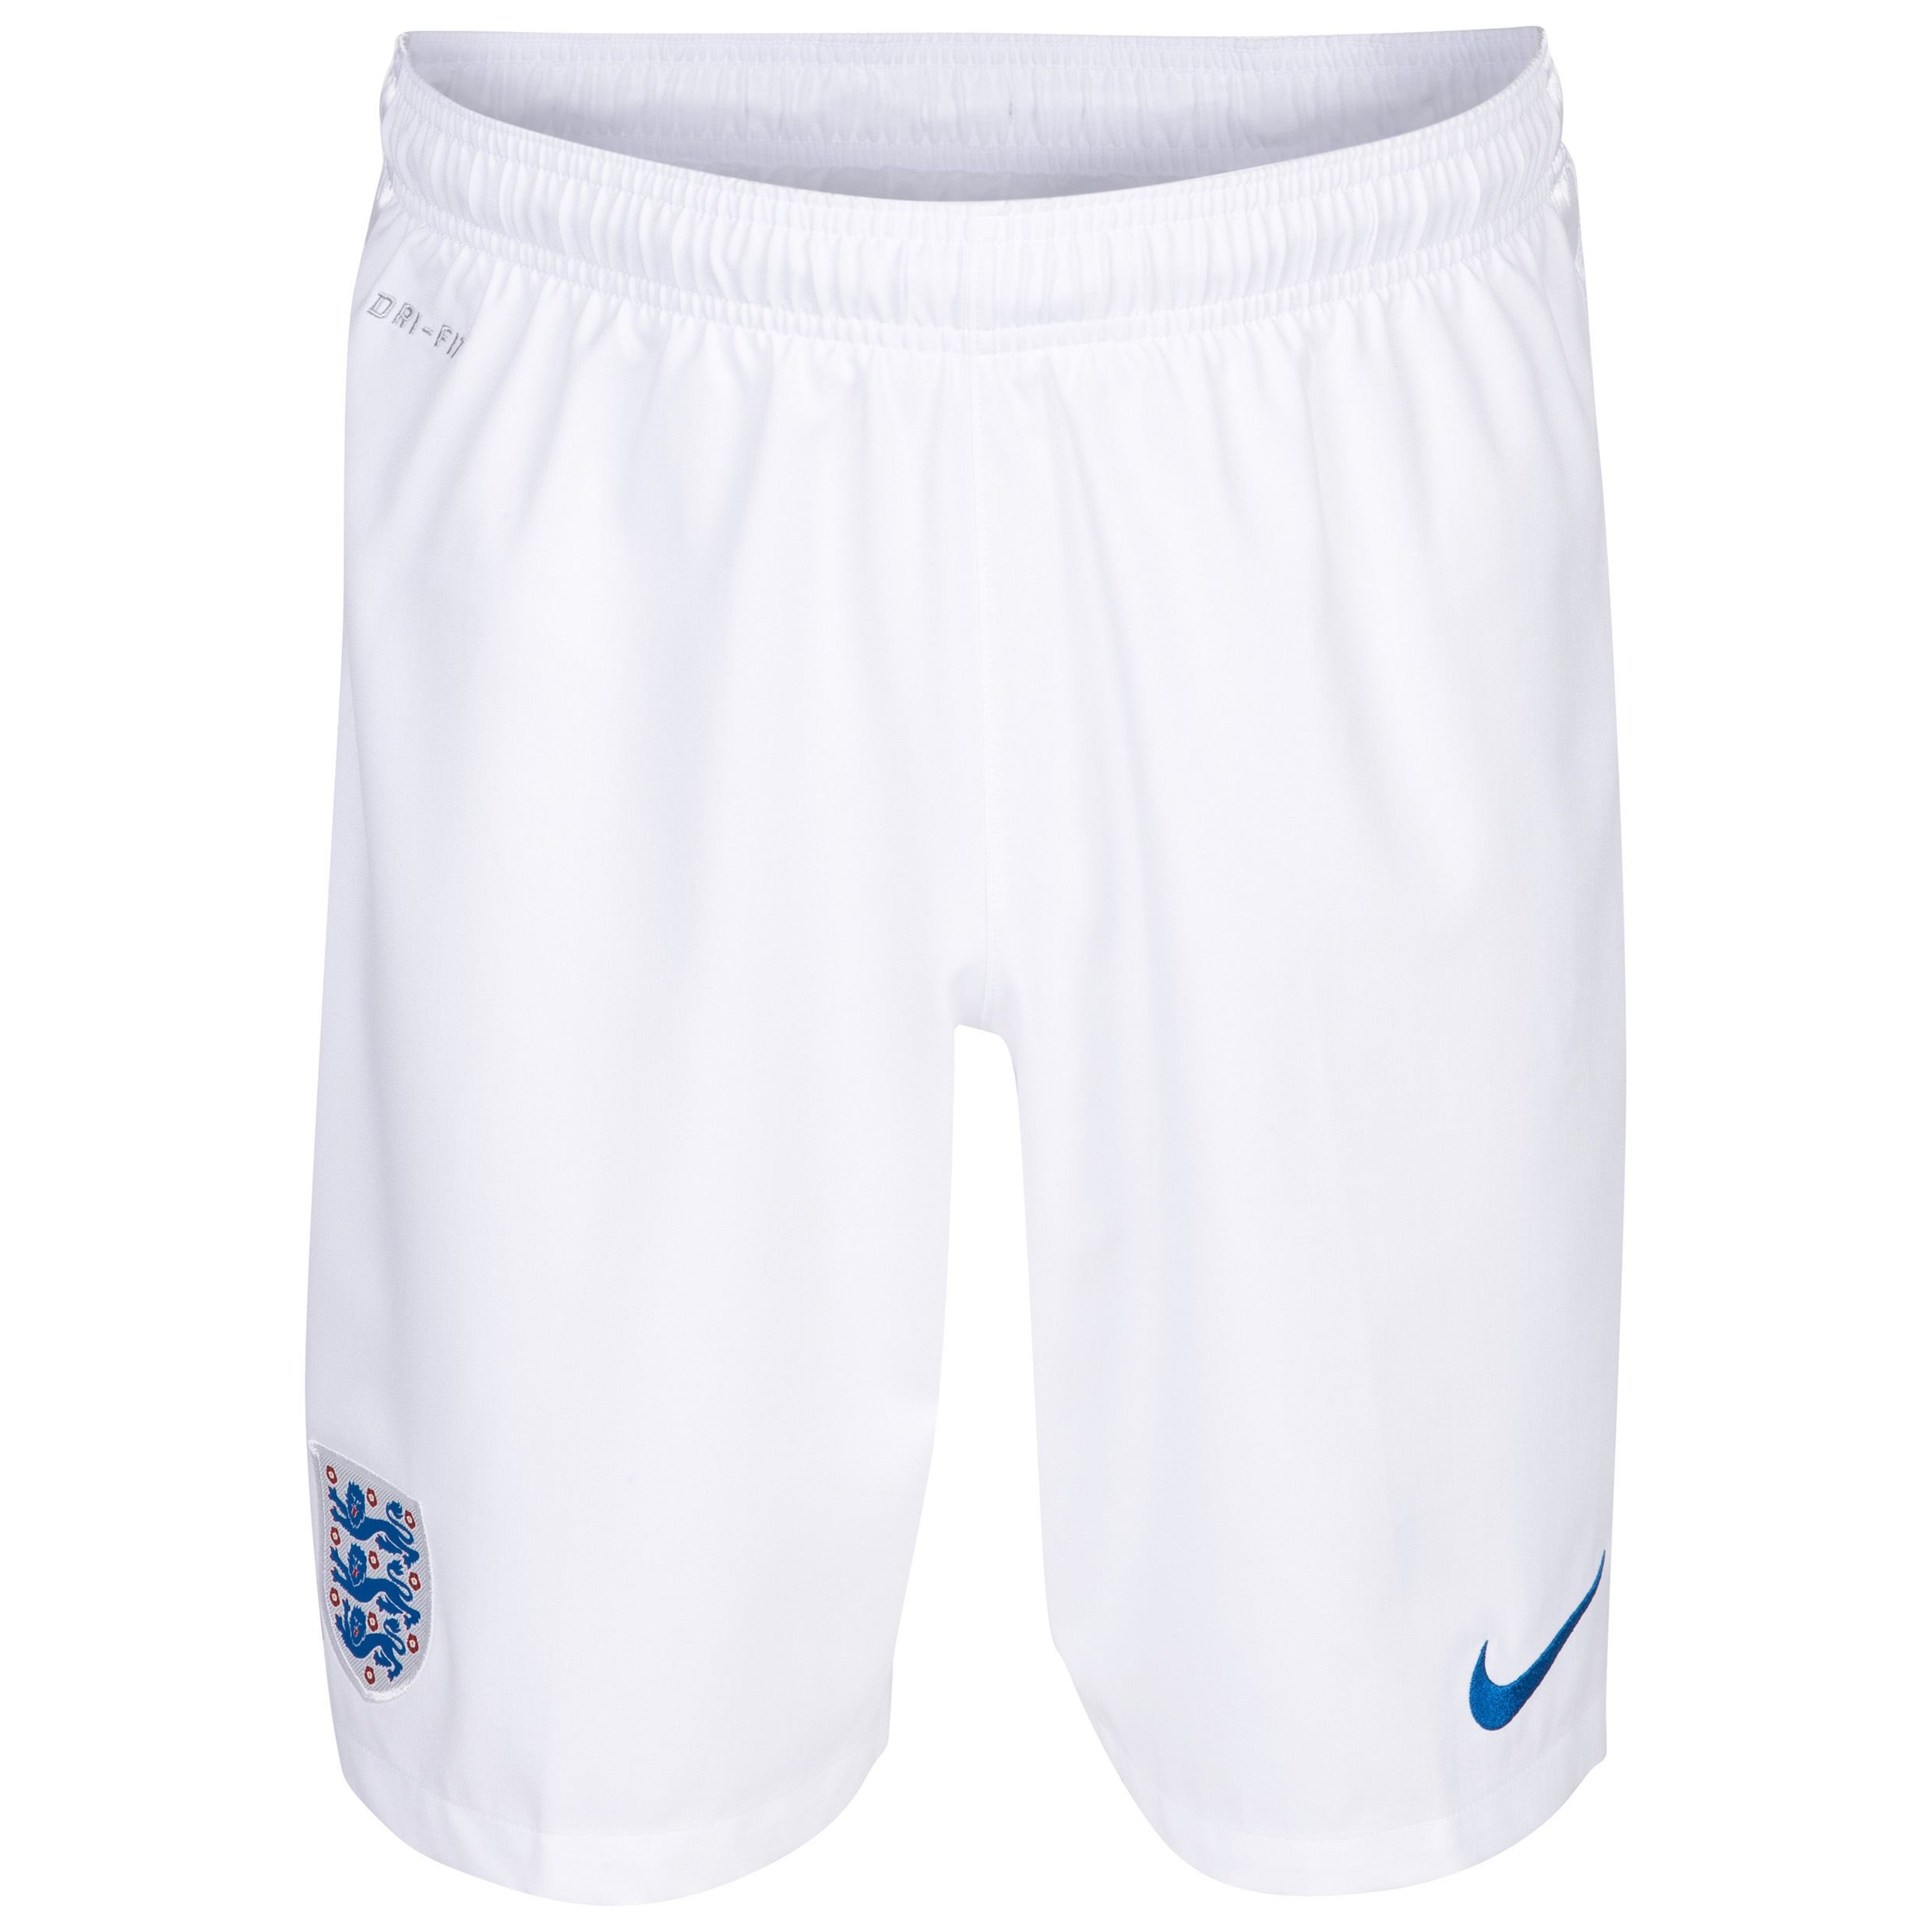 England Home Short 2014/15 White